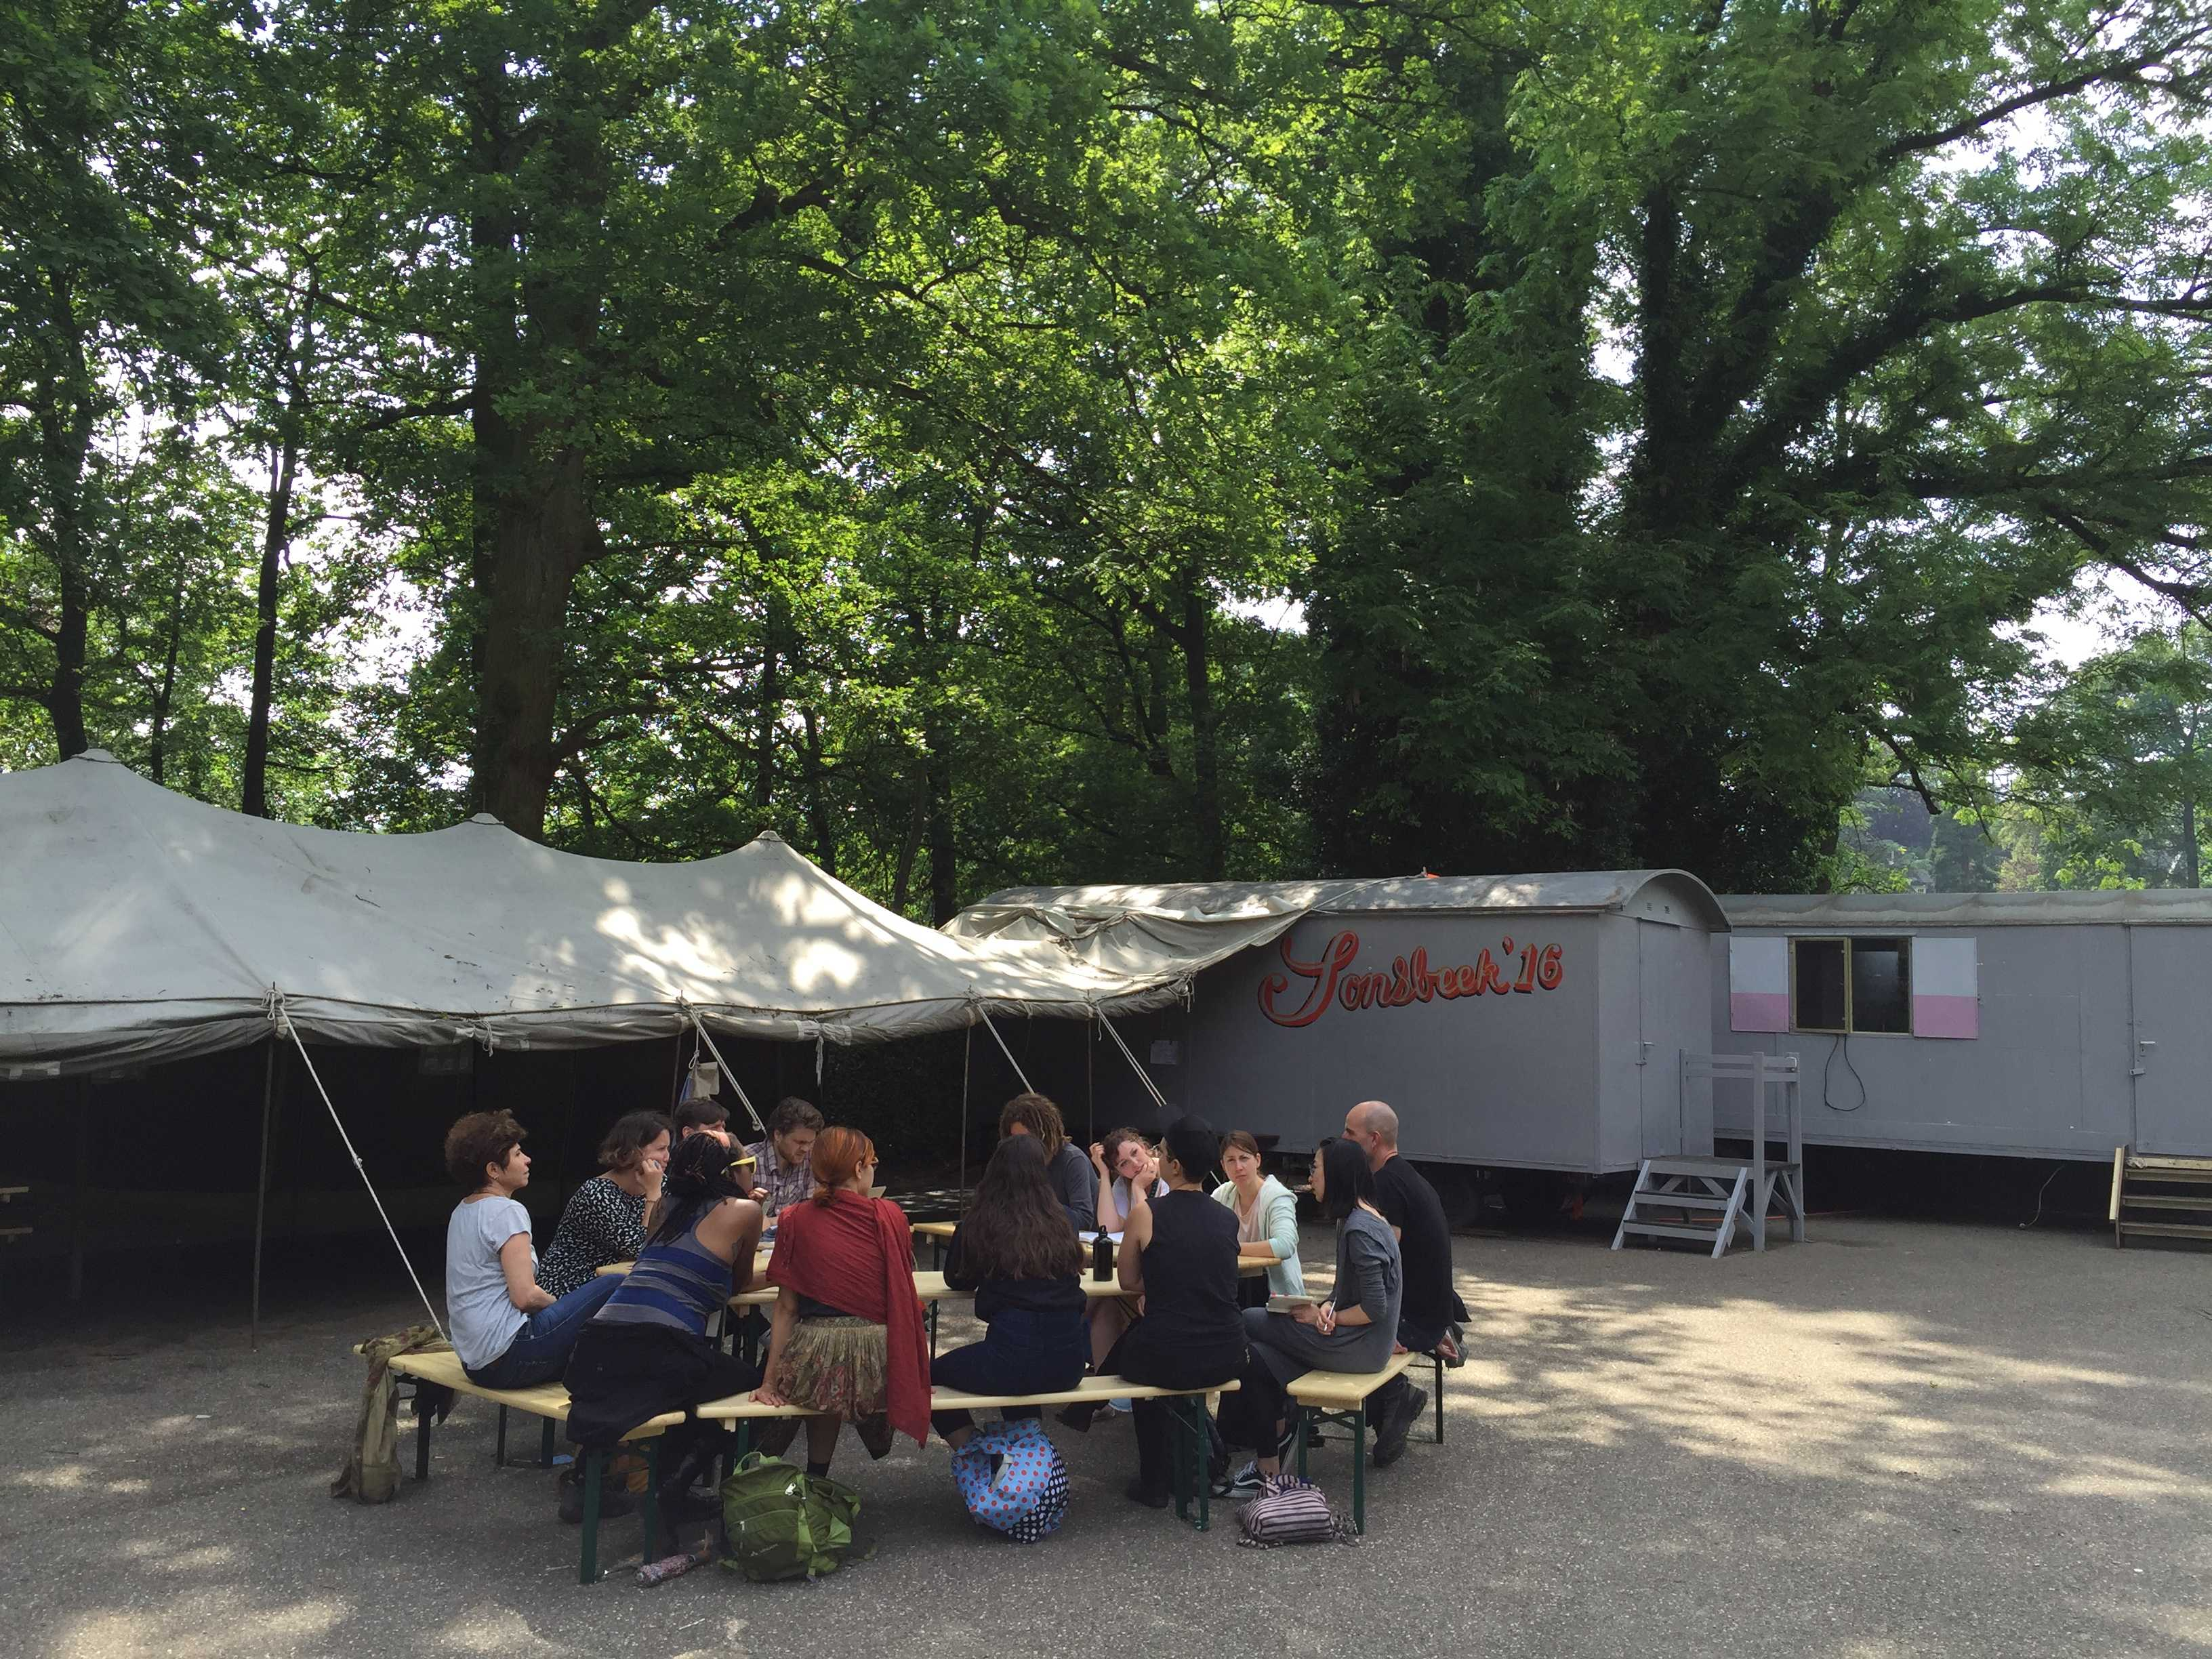 DAI-INLAND class at Park Sonsbeek, June 1, 2016. Photo: Sanne Oorthuizen